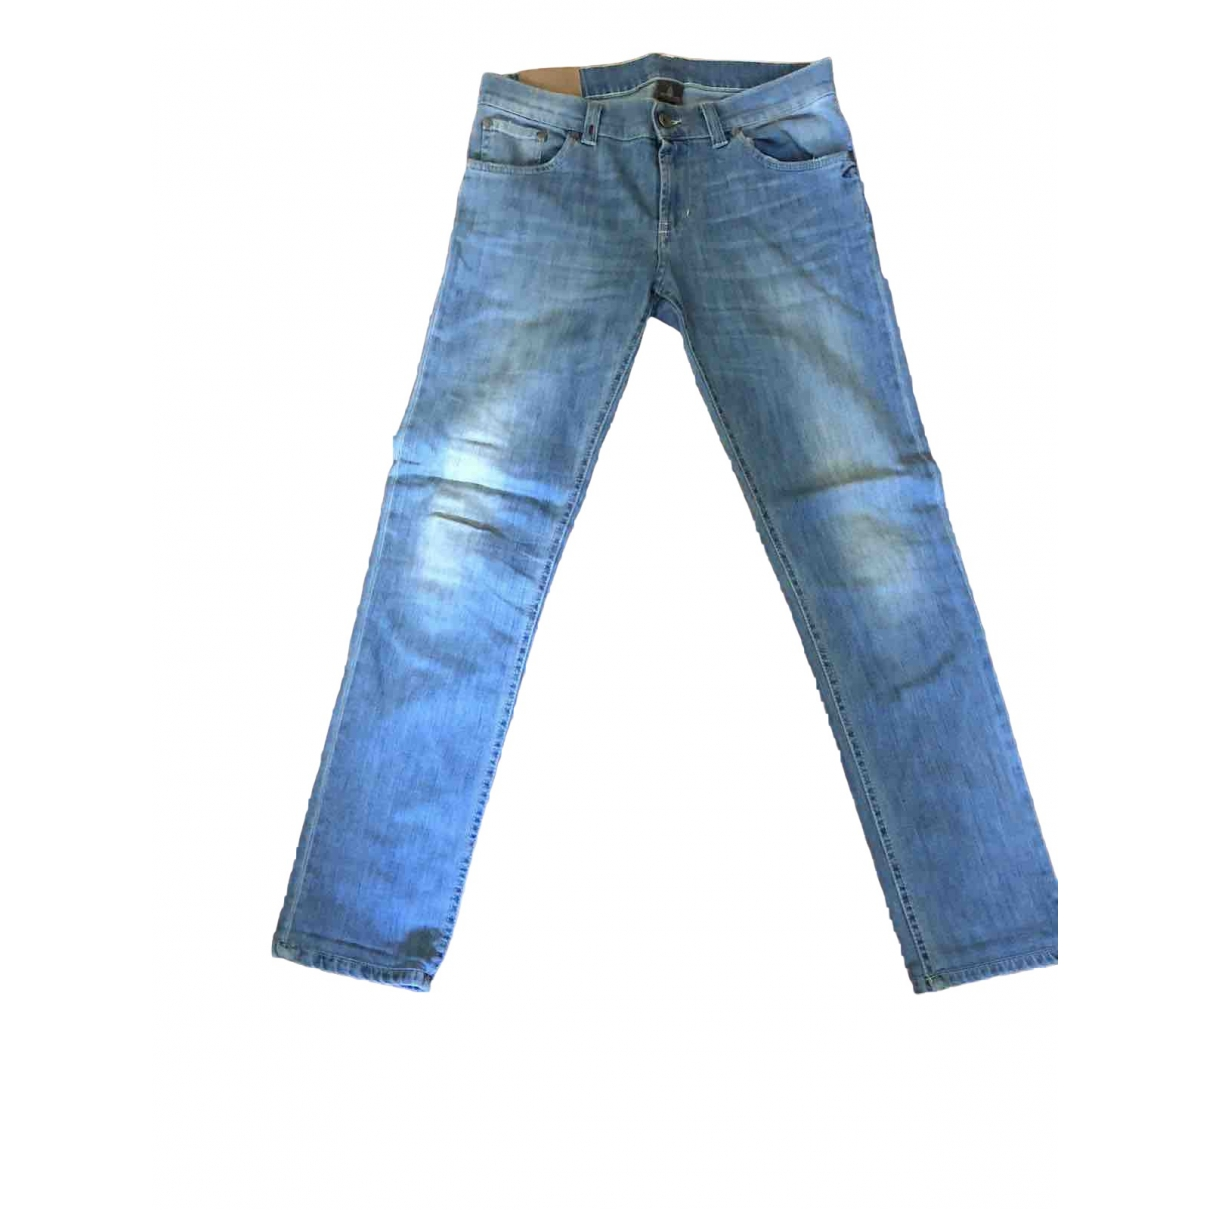 Dondup \N Denim - Jeans Trousers for Kids 14 years - S FR